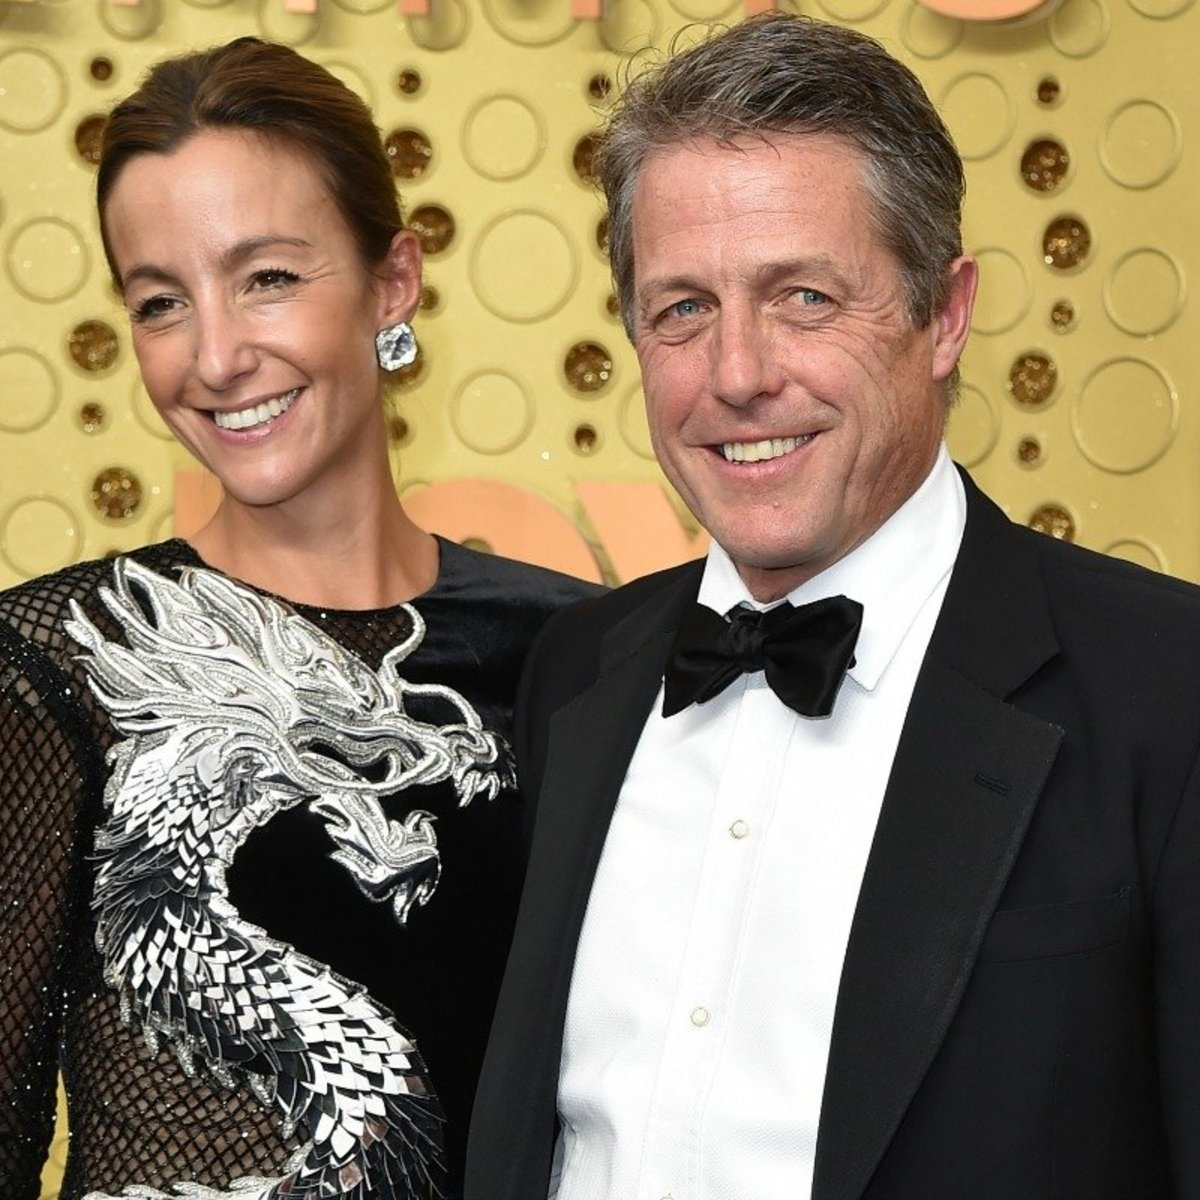 Hugh Grant S Children A Rather Complicated Family Situation